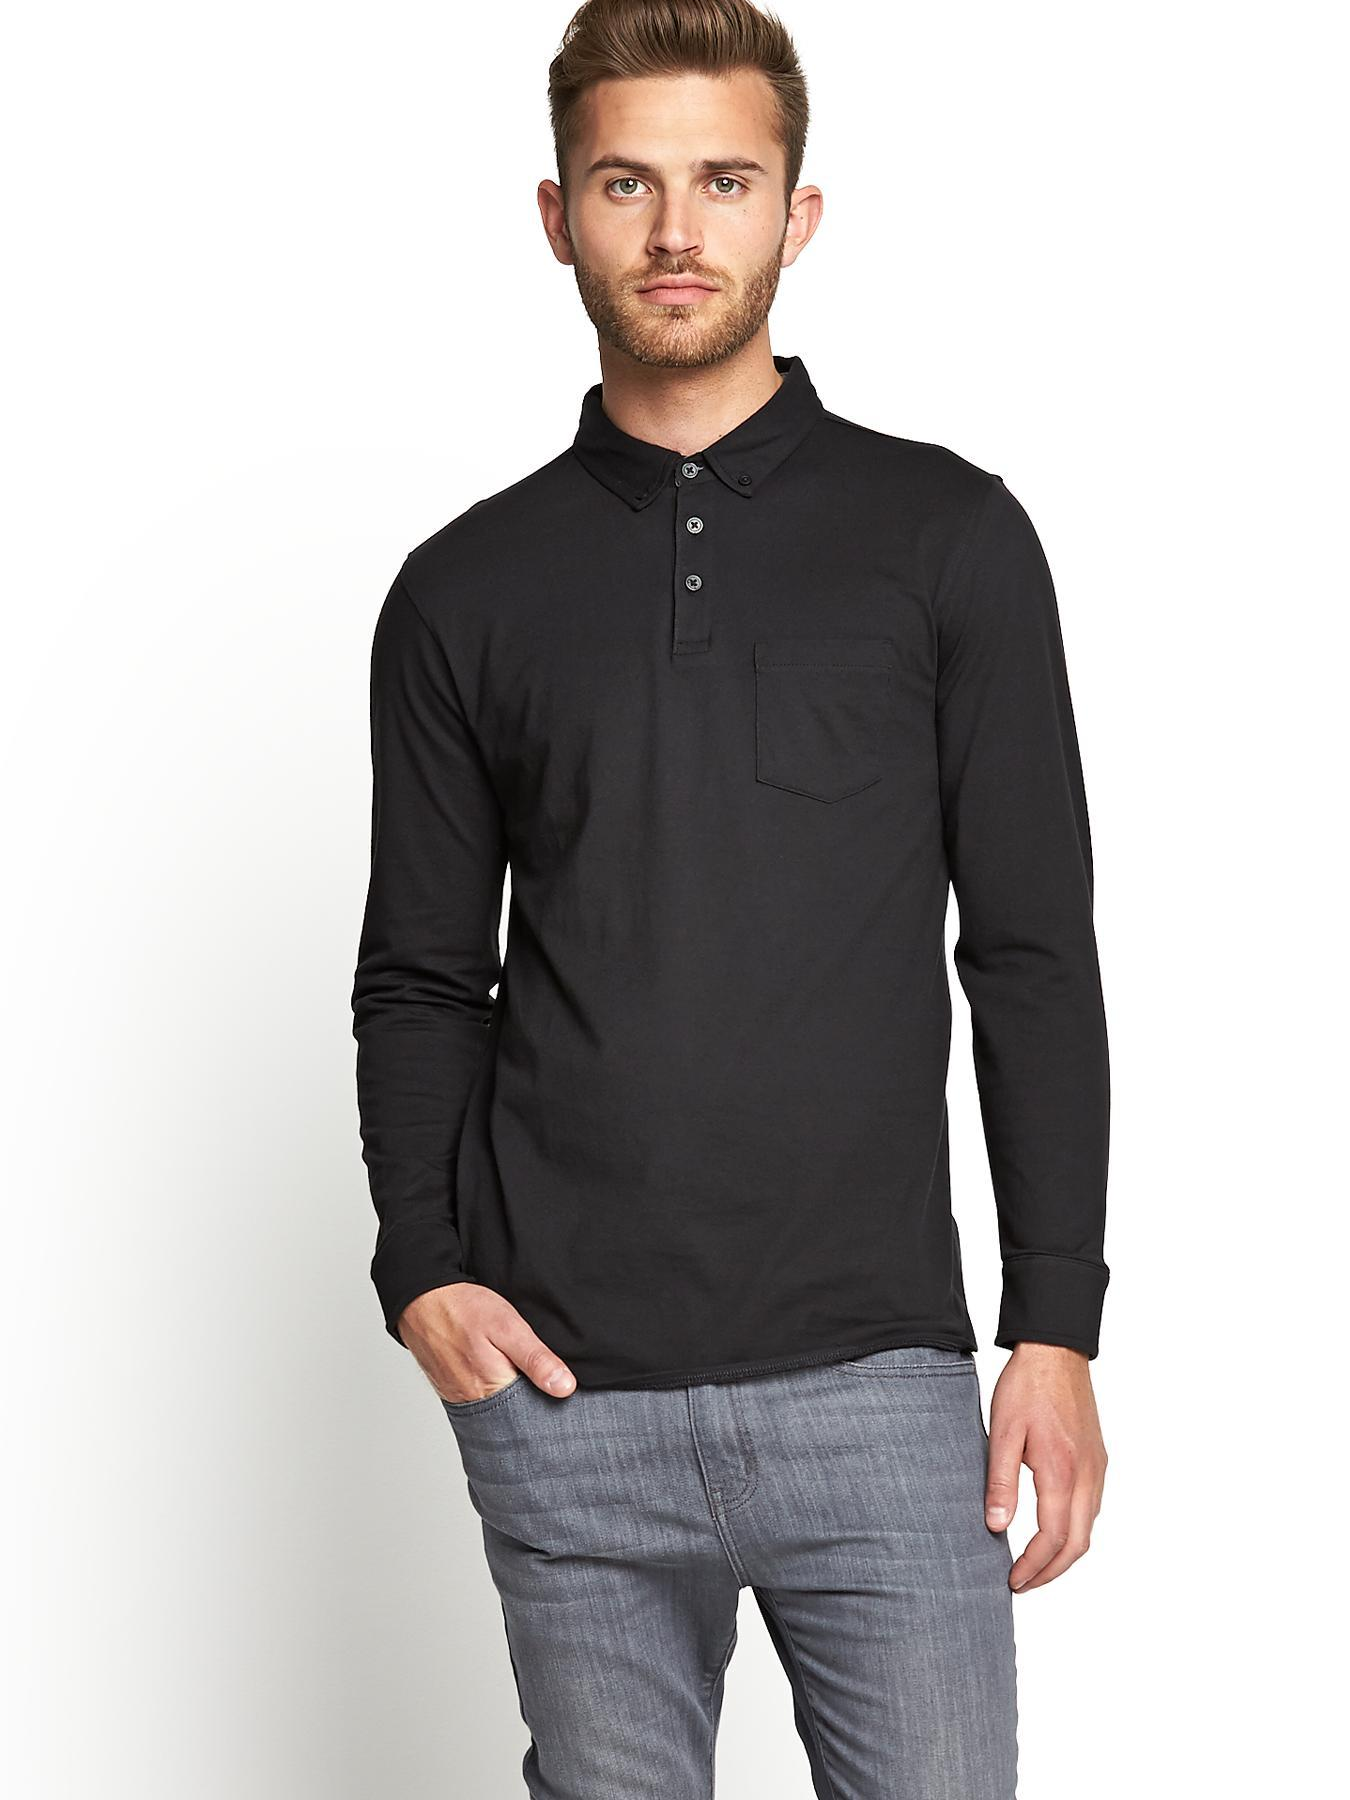 Mens Long Sleeve Slim Fit Jersey Polo T-shirt, Black at Littlewoods